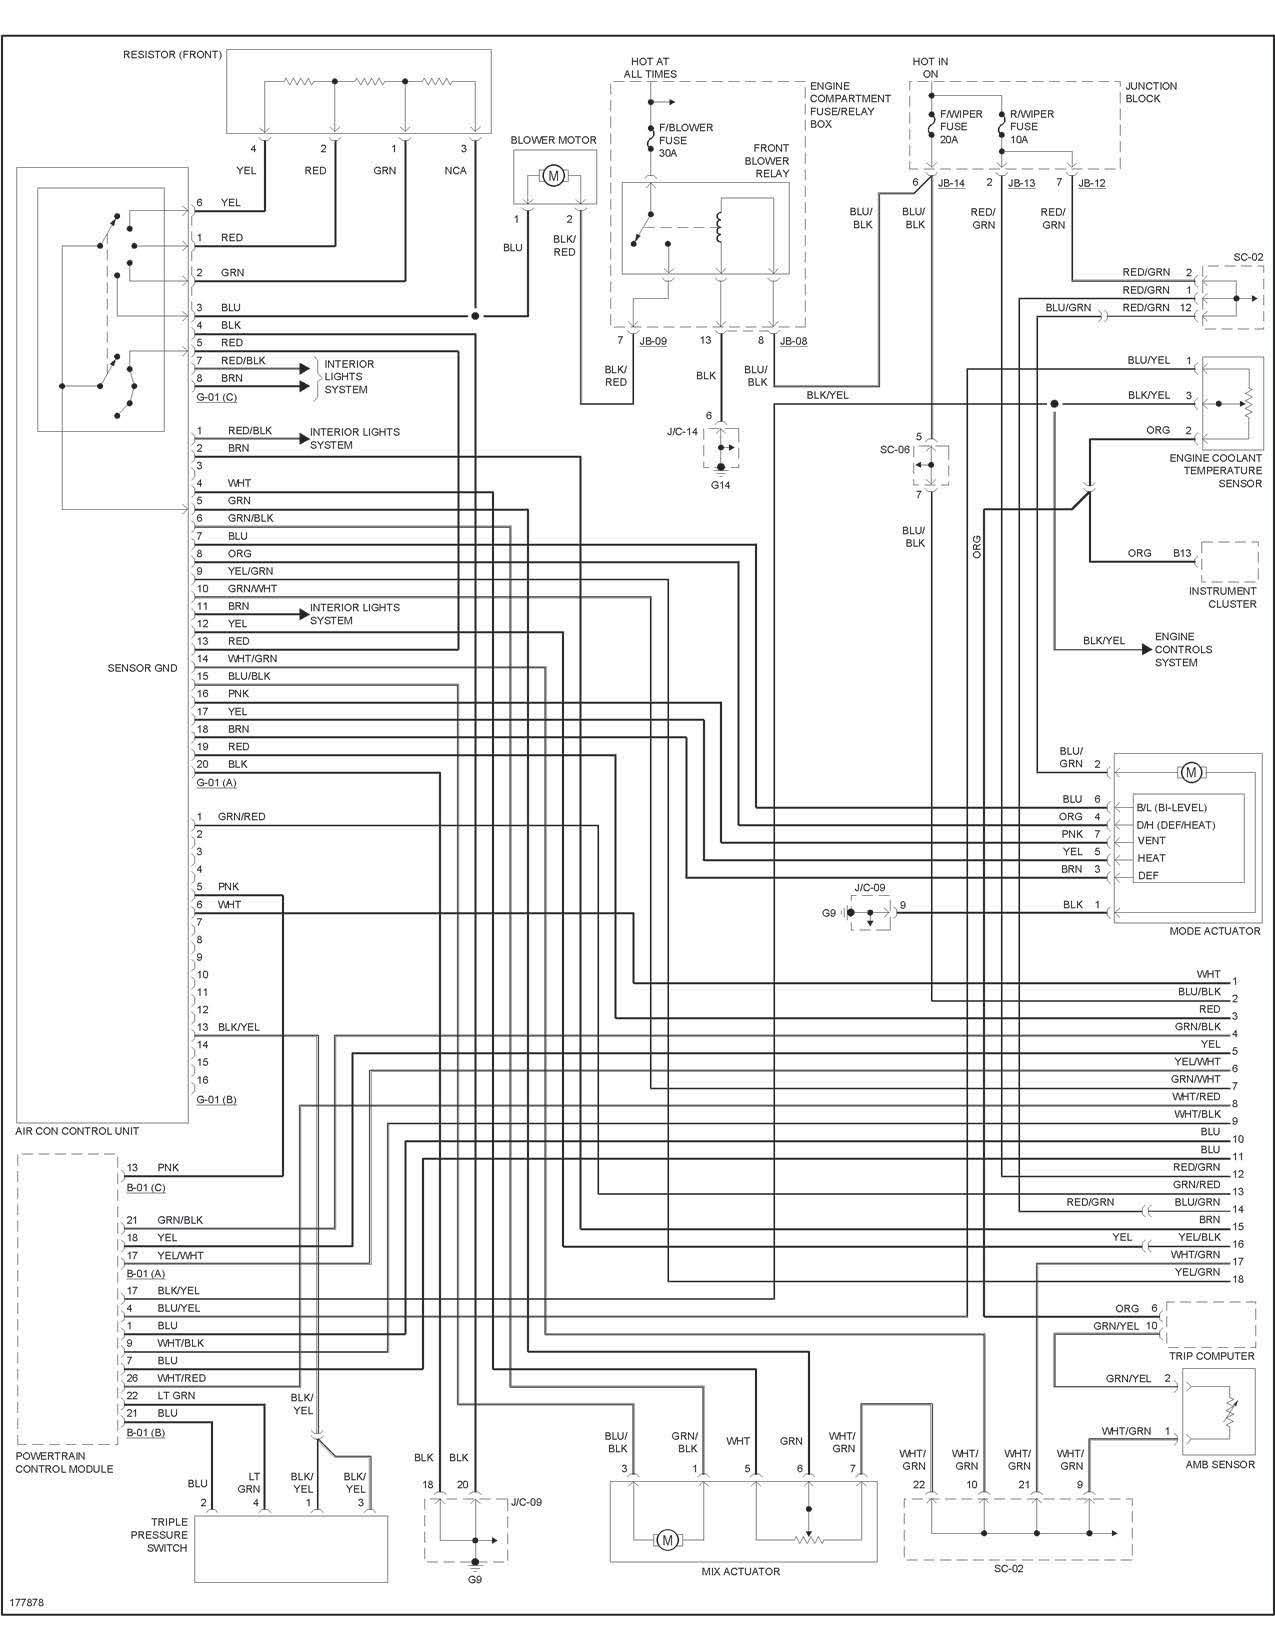 2001 Kia Sportage Engine Diagram | Wiring Diagram Kia Rio Engine Fuse Diagram on fiat 500 fuse diagram, pontiac vibe fuse diagram, toyota matrix fuse diagram, buick century fuse diagram, mazda tribute fuse diagram, nissan maxima fuse diagram, dodge avenger fuse diagram, volkswagen beetle fuse diagram, chevy hhr fuse diagram, nissan murano fuse diagram, geo metro fuse diagram, suzuki xl7 fuse diagram, mazda b2500 fuse diagram, audi s5 fuse diagram, gmc yukon fuse diagram, honda crx fuse diagram, suzuki sx4 fuse diagram, saturn astra fuse diagram, nissan juke fuse diagram, dodge intrepid fuse diagram,